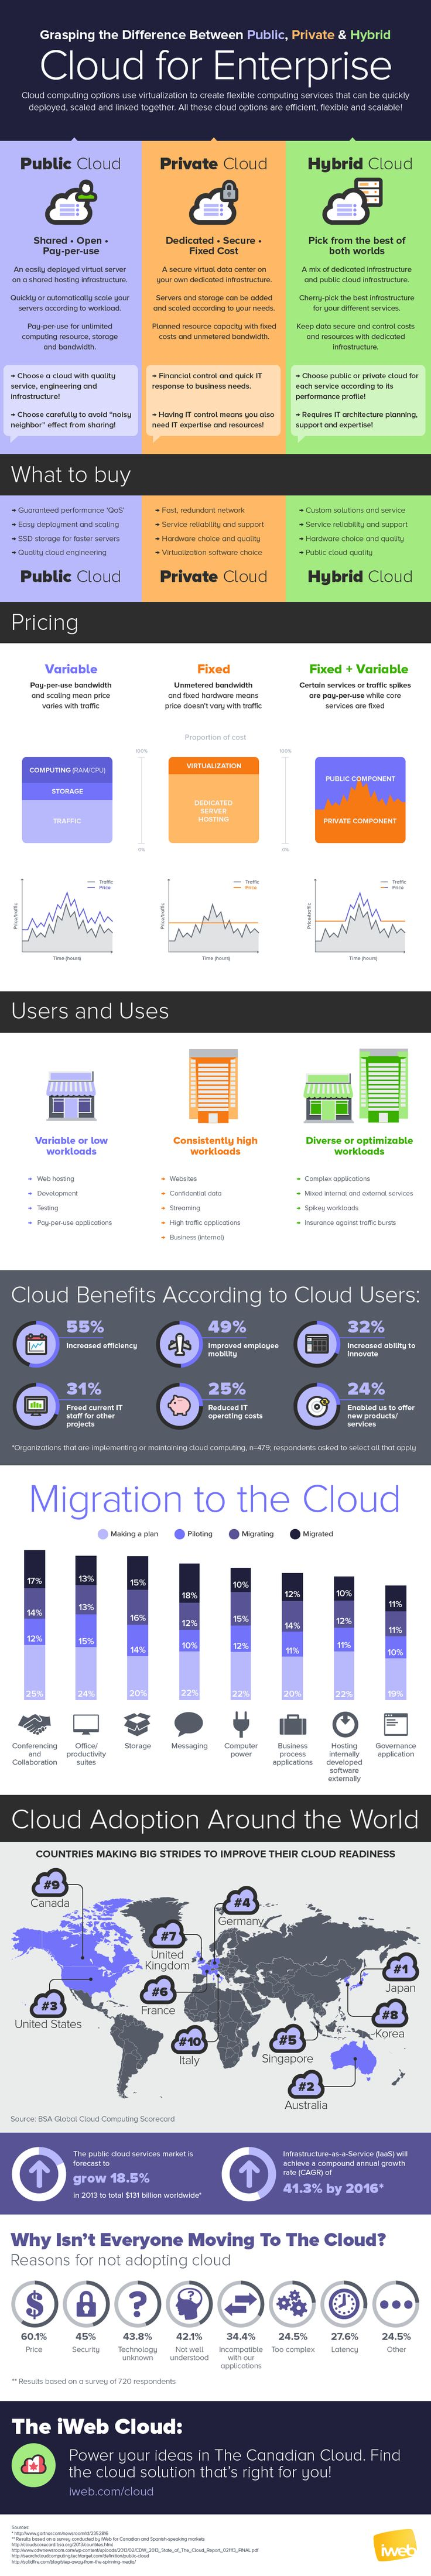 The Difference Between Public and Private Cloud image difference public private hybrid cloud